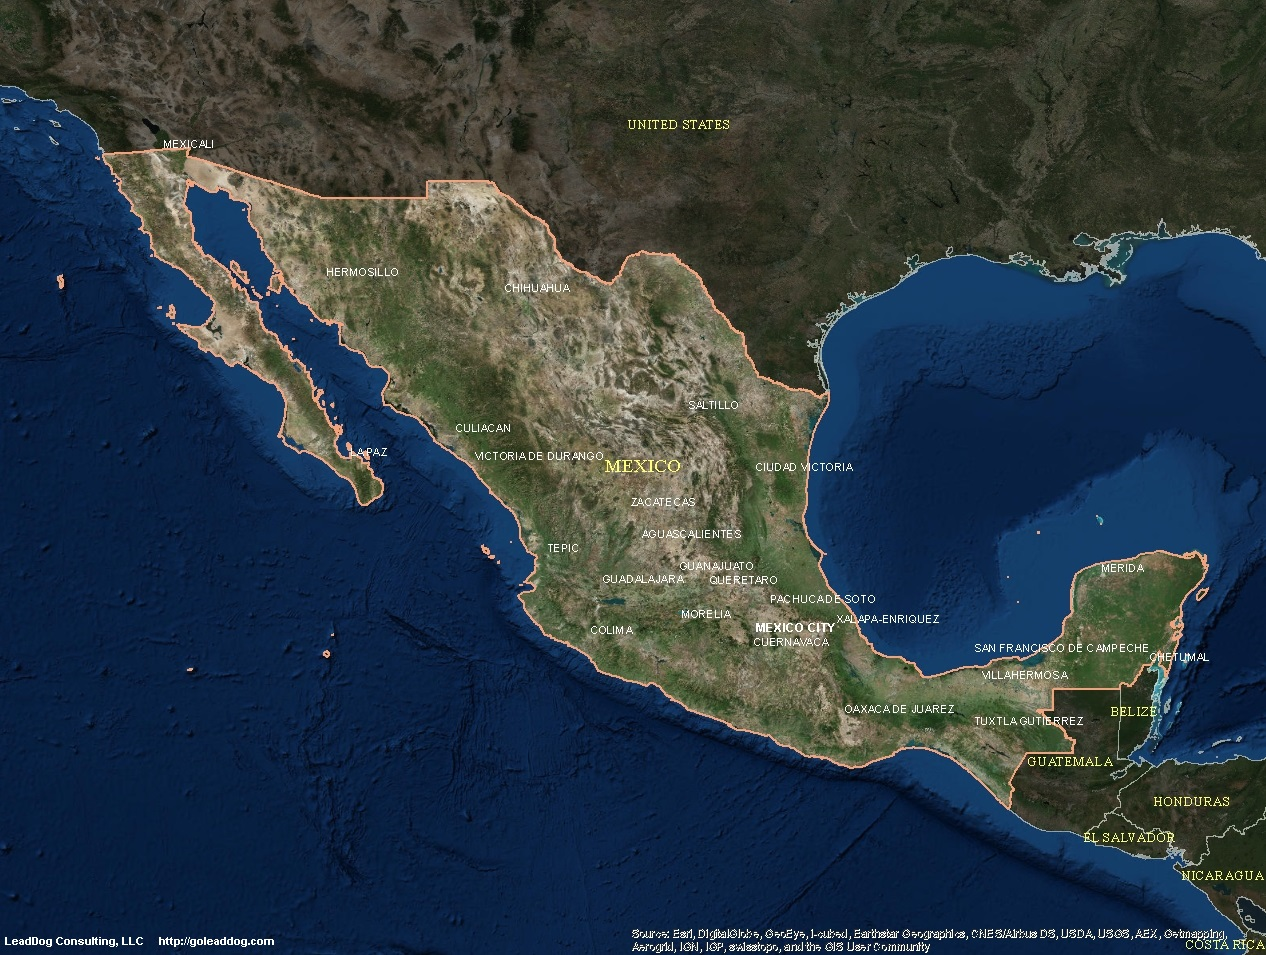 Mexico Satellite Maps | LeadDog Consulting on map brazil satellite, australia satellite, live local satellite, haiti map satellite, views your house from satellite, map travel mexico, map of africa and south america, map of ancient mediterranean world, world satellite, cat island bahamas map satellite, map of aruba and venezuela, google earth views from satellite, google map satellite, map showing cancun, philippine map satellite, look at address from satellite, chihuahua mexico map satellite, map of castries st. lucia, weather channel atlantic satellite, earth observation satellite,